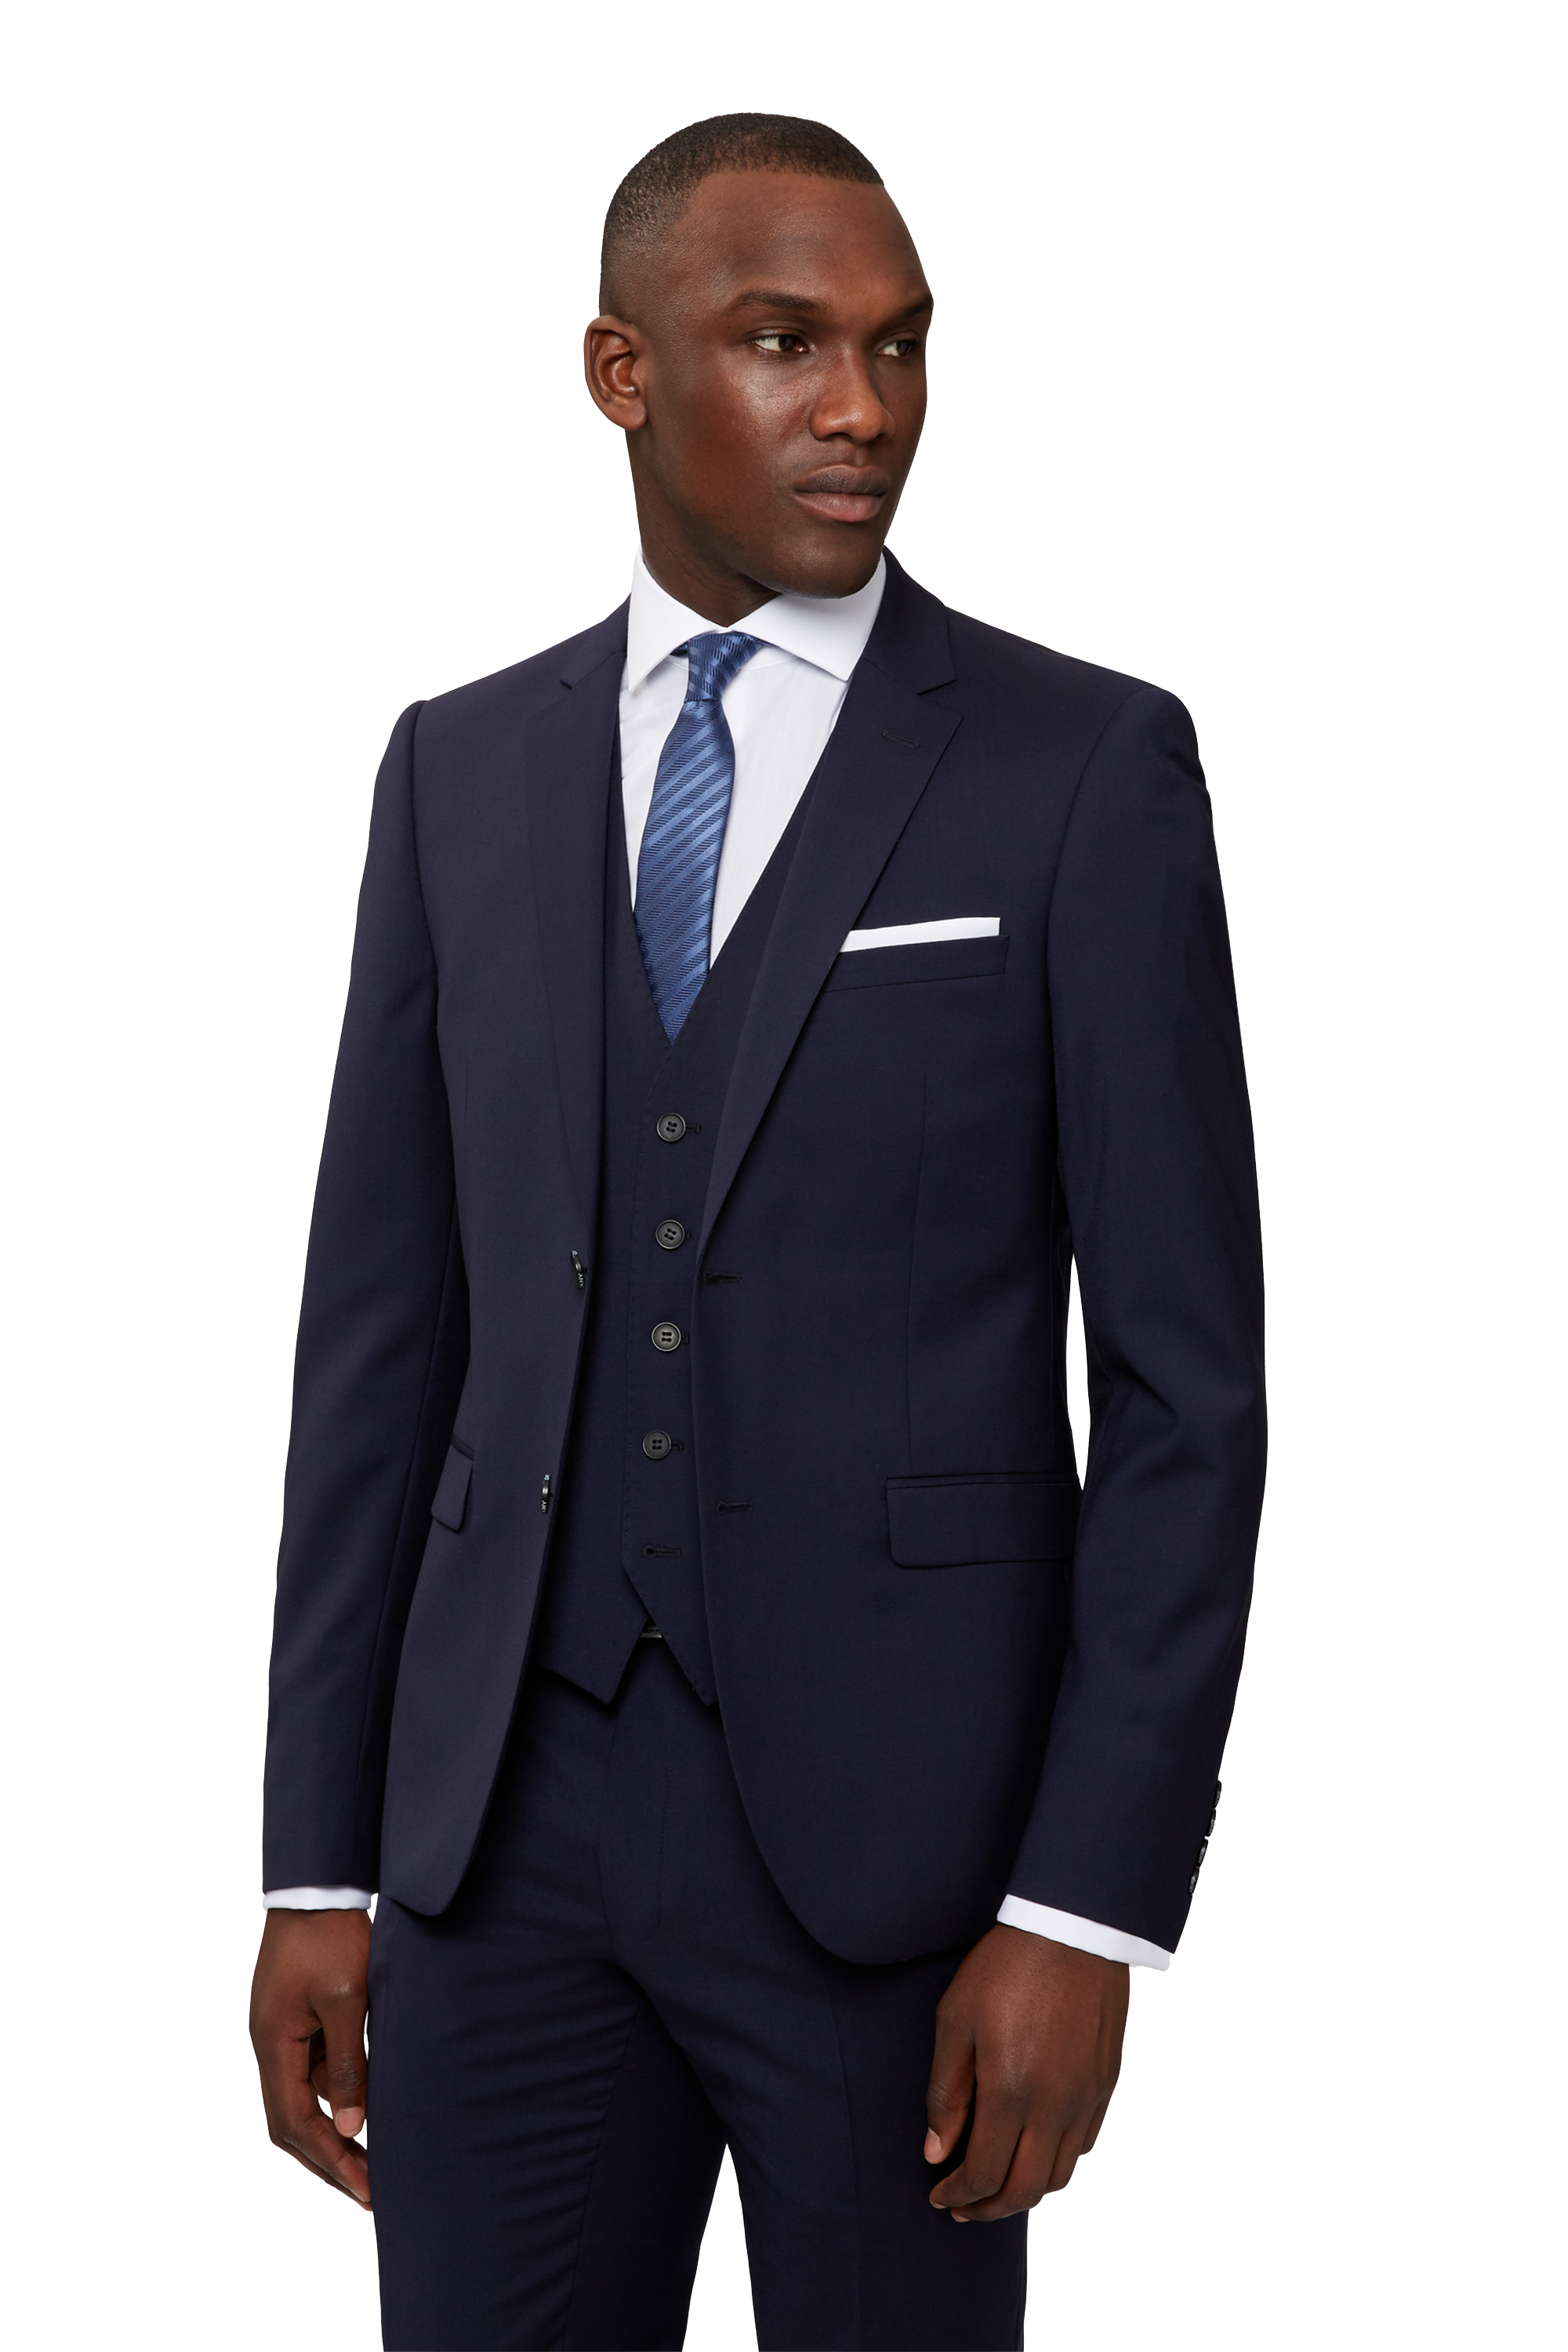 DKNY Mens Navy Blue Suit Jacket Slim Fit Two Button Wool Blazer ...